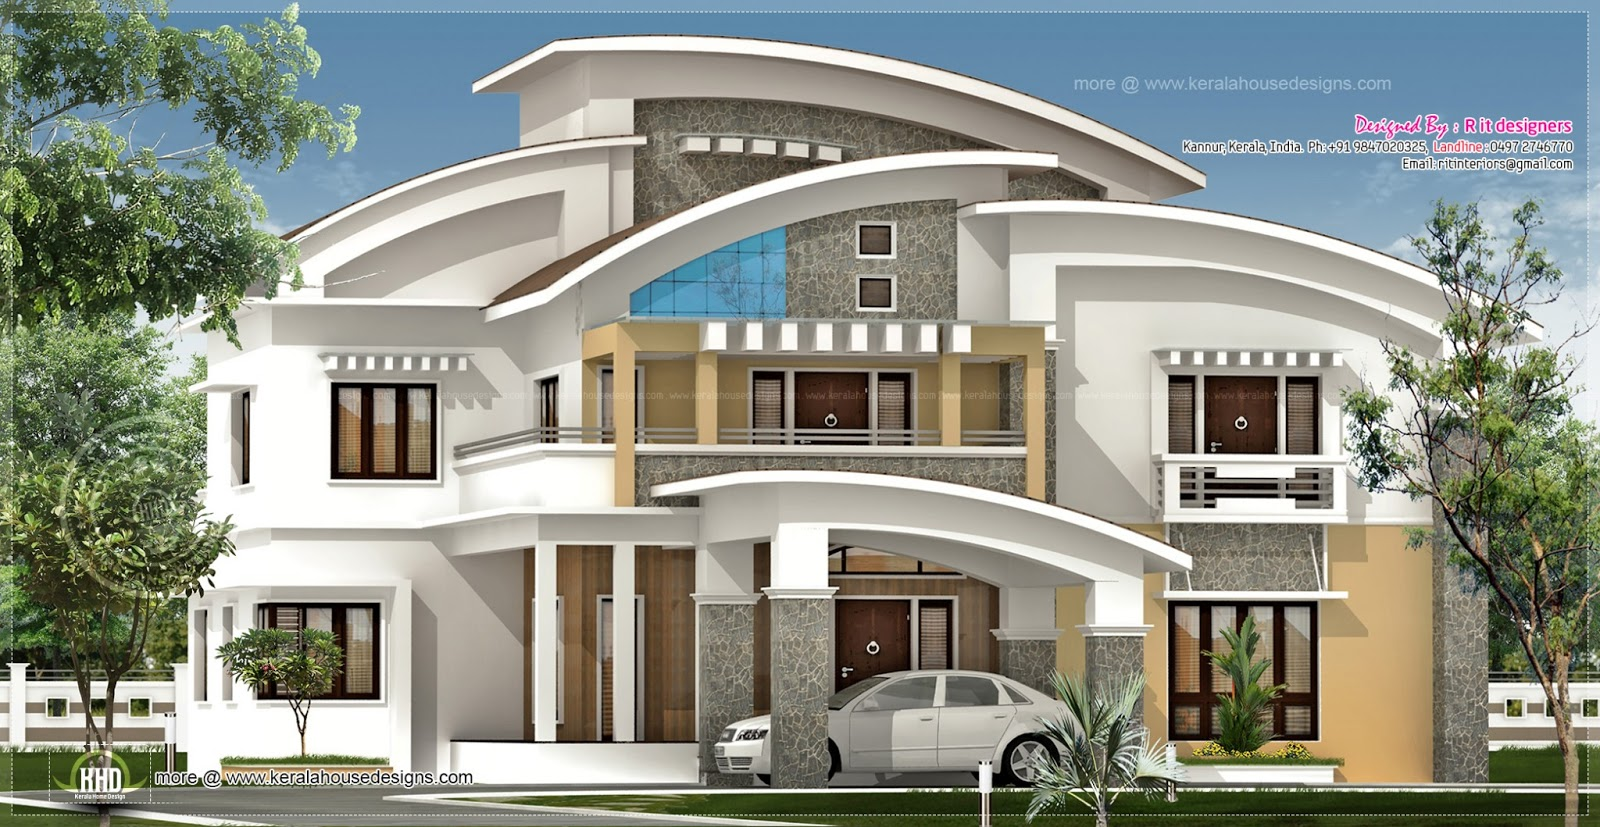 Small Luxurious Homes Small Luxury House Plans Luxury House Plans And Designs